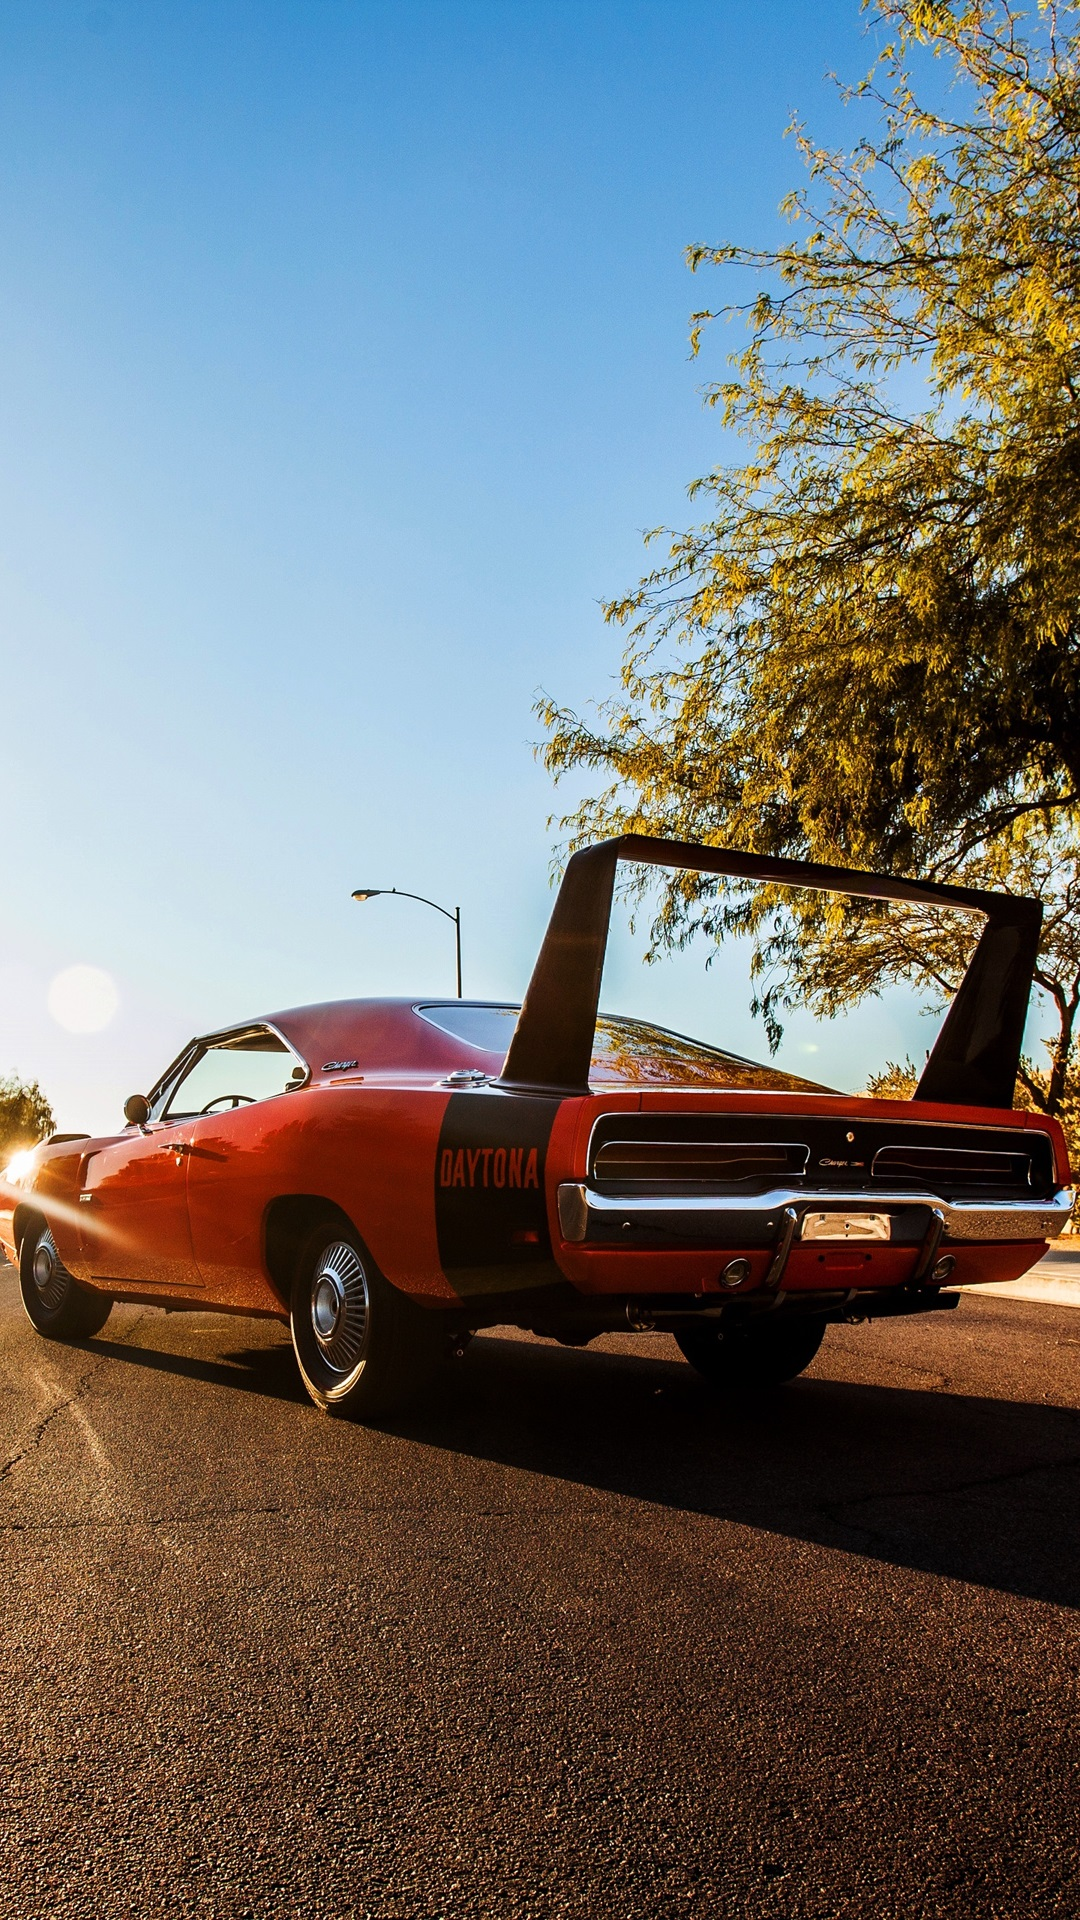 1969 Dodge Charger Supercar Rear View Iphone X 8 7 6 5 4 3gs